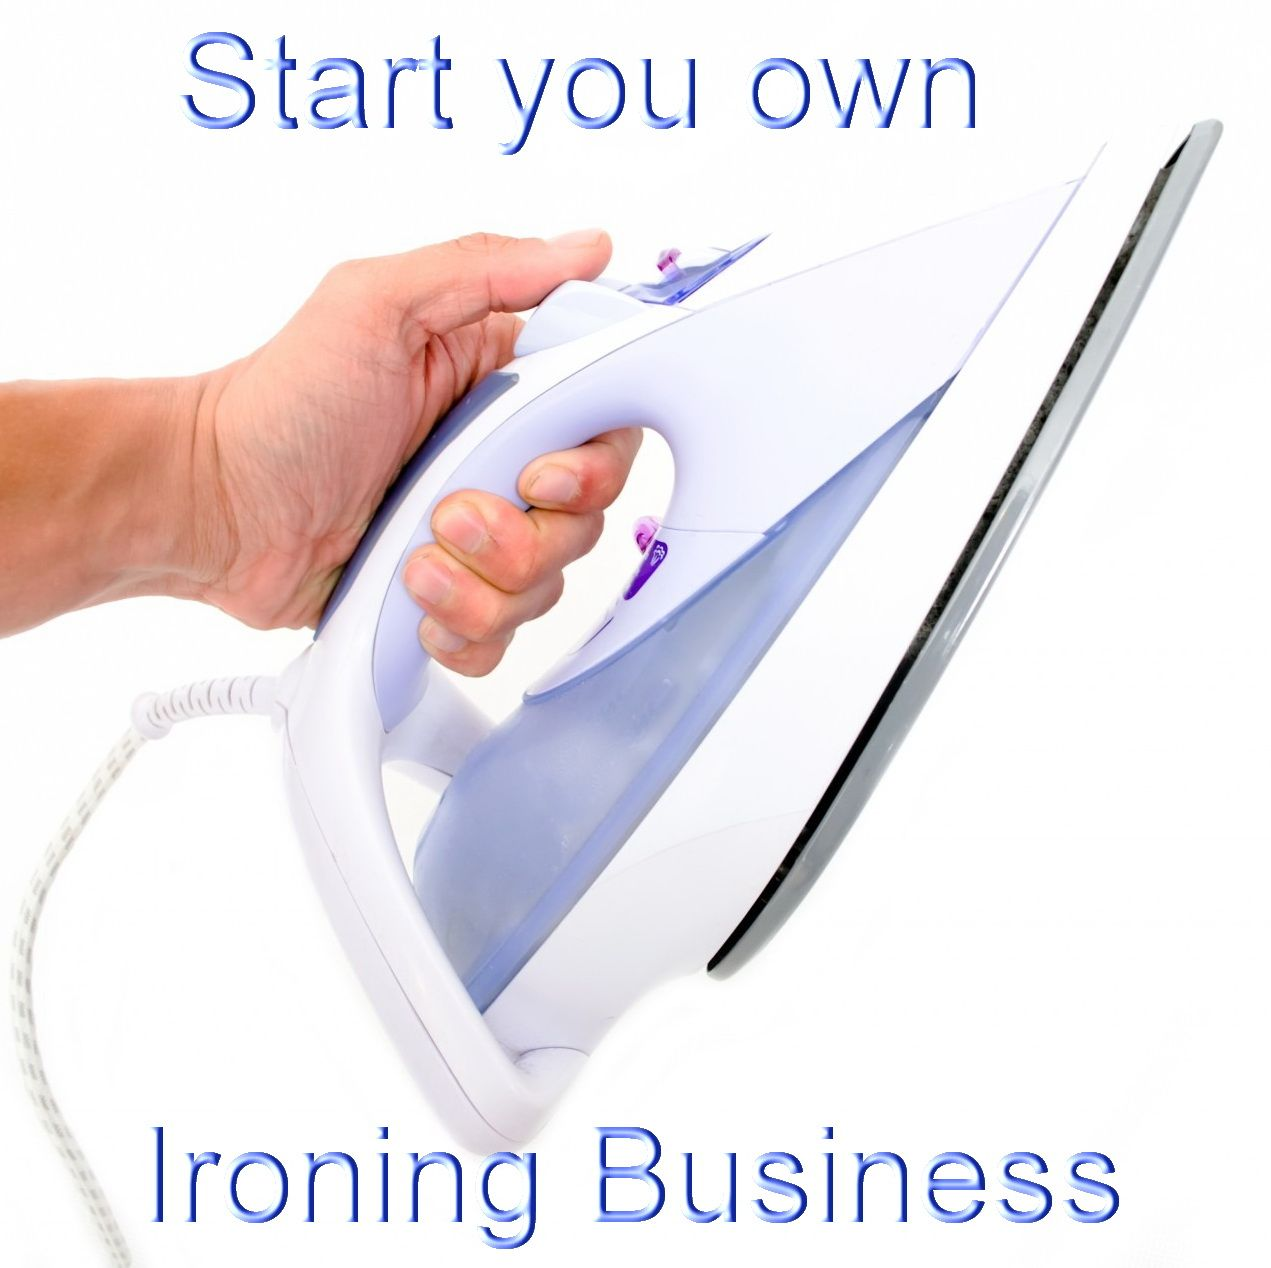 How to Start Your Own Ironing Business From Home | Pinterest ...